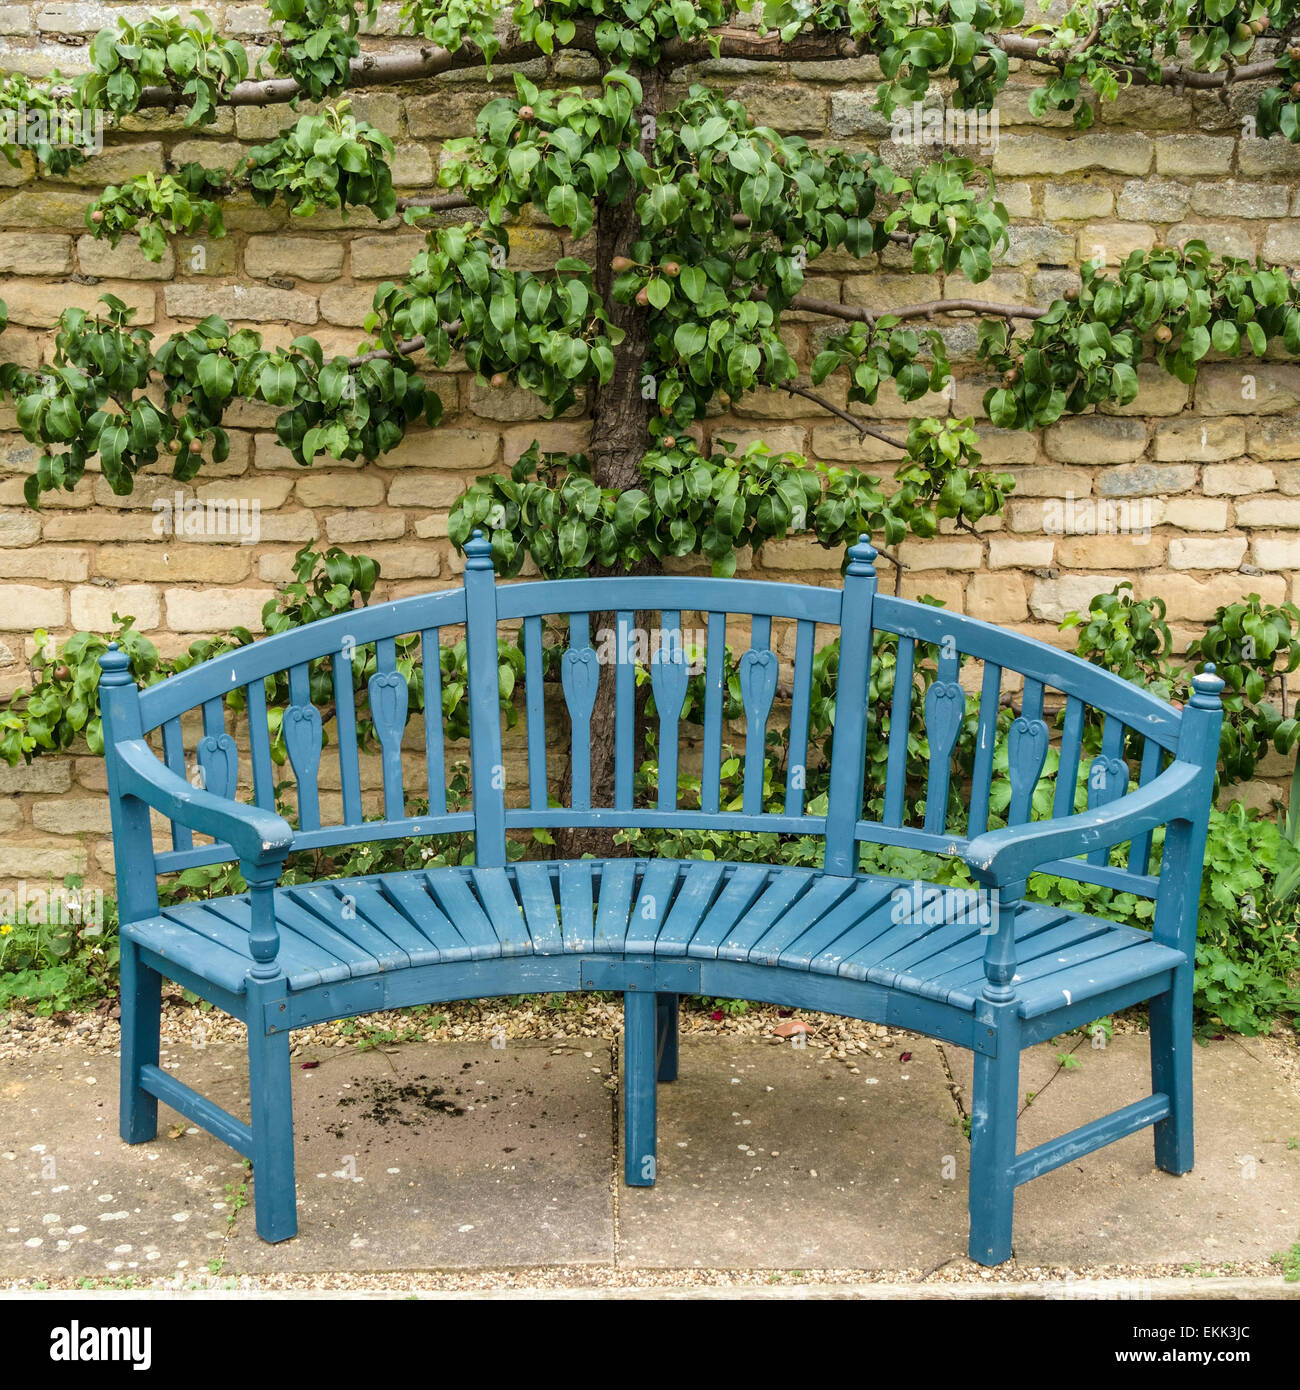 Blue wooden garden bench seat in front of trained pear tree grimsthorpe castle bourne lincolnshire england uk